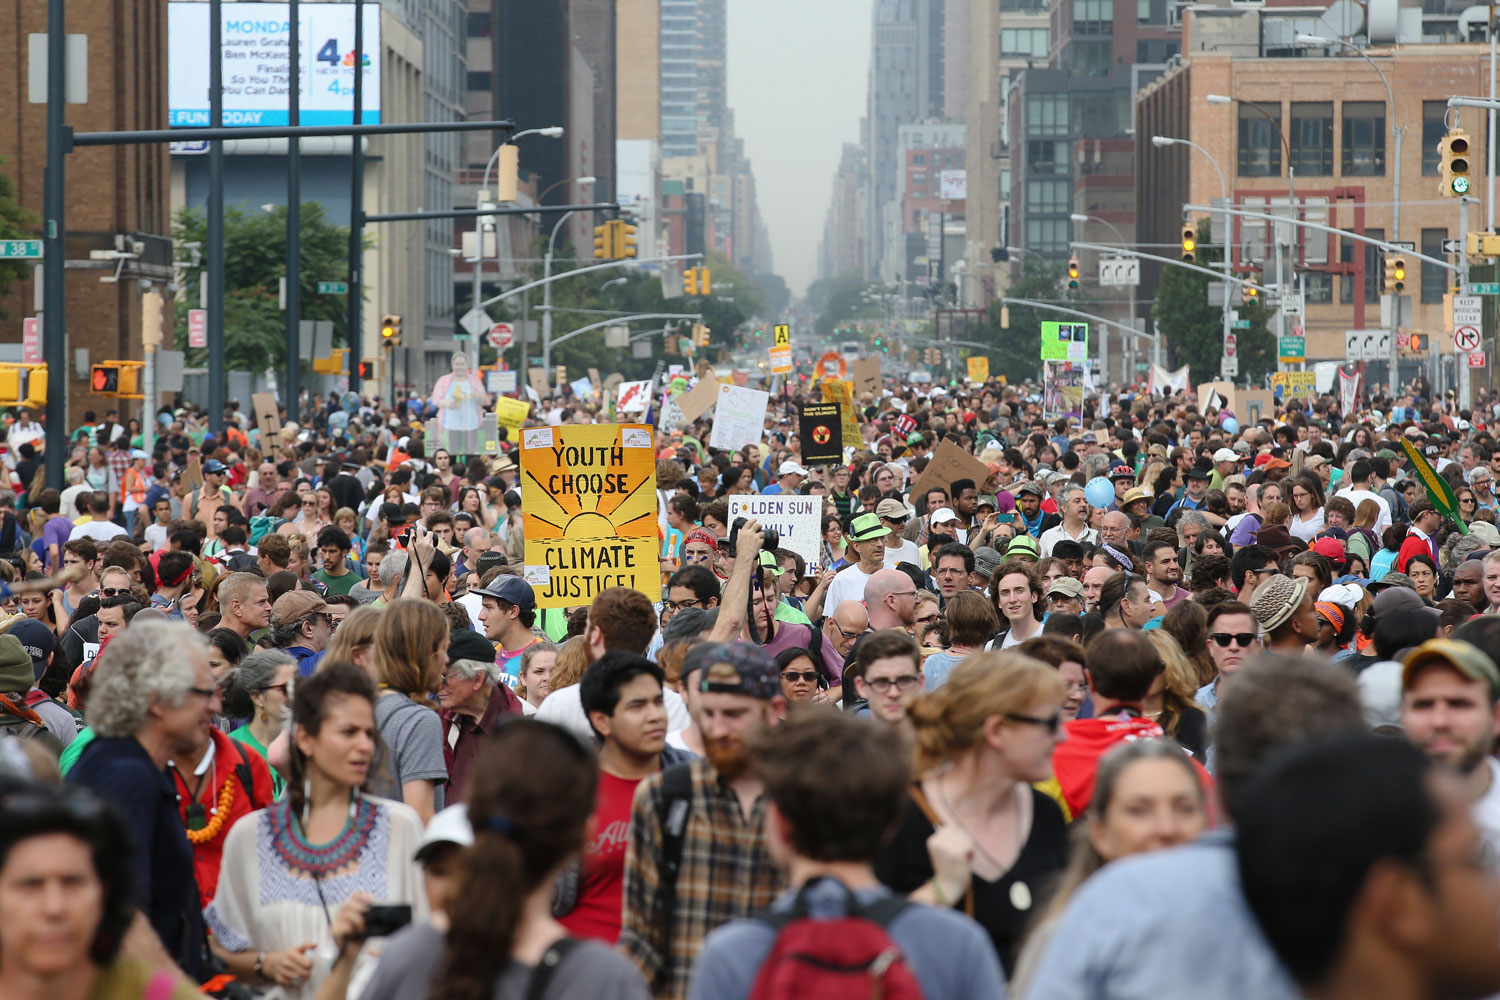 The-People's-Climate-March-Was-Huge-but-Will-It-Change-Everything